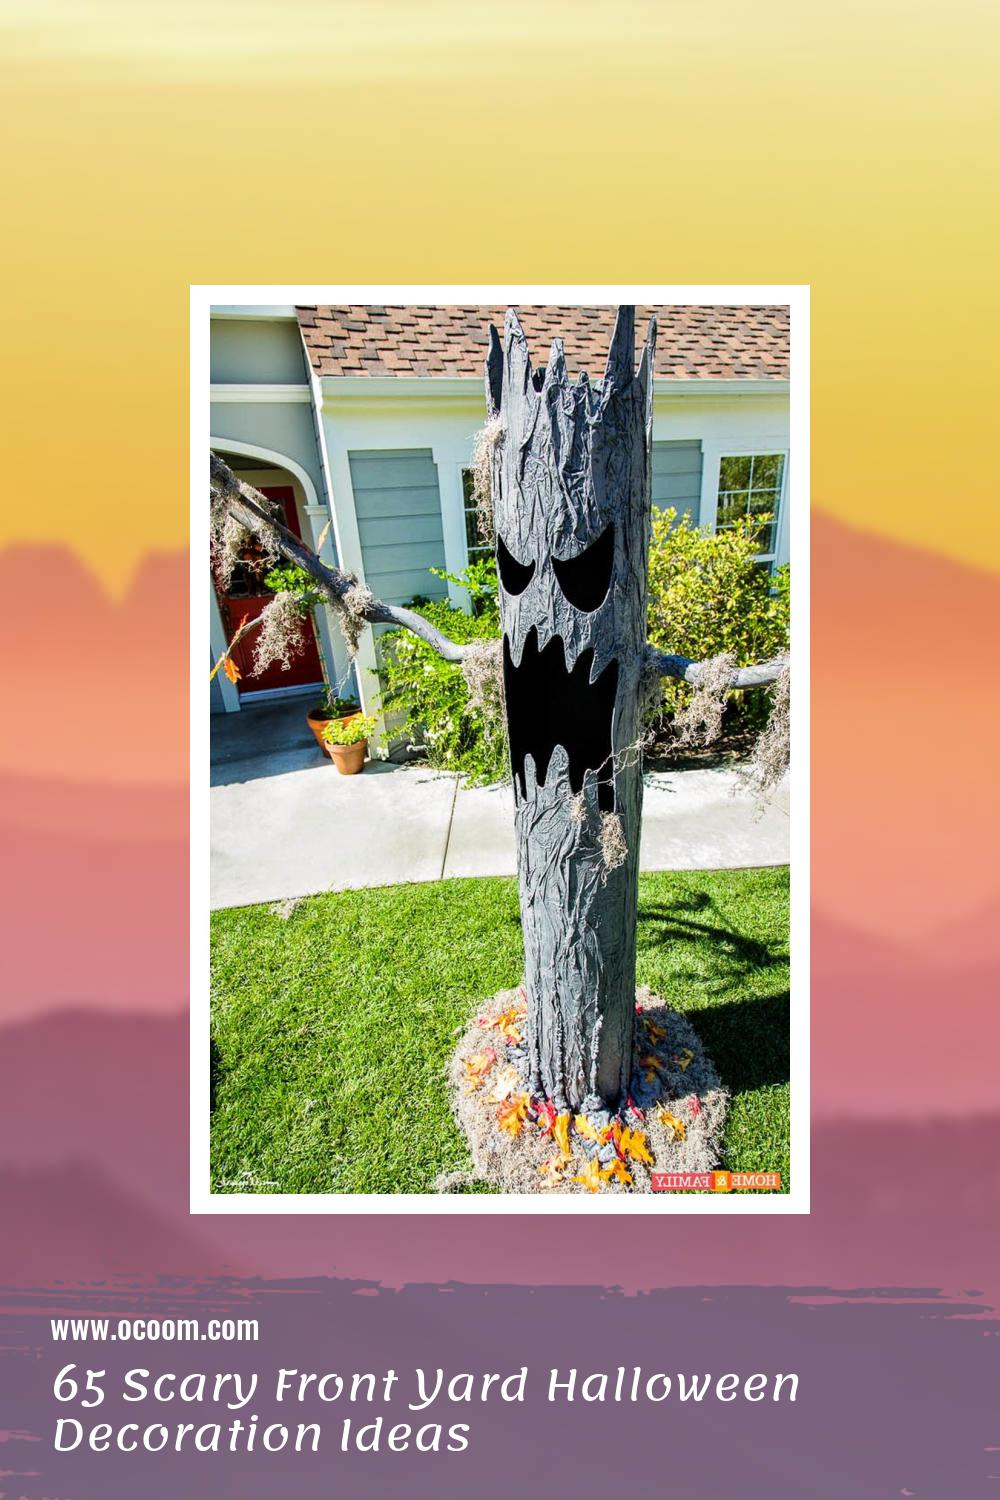 65 Scary Front Yard Halloween Decoration Ideas 63